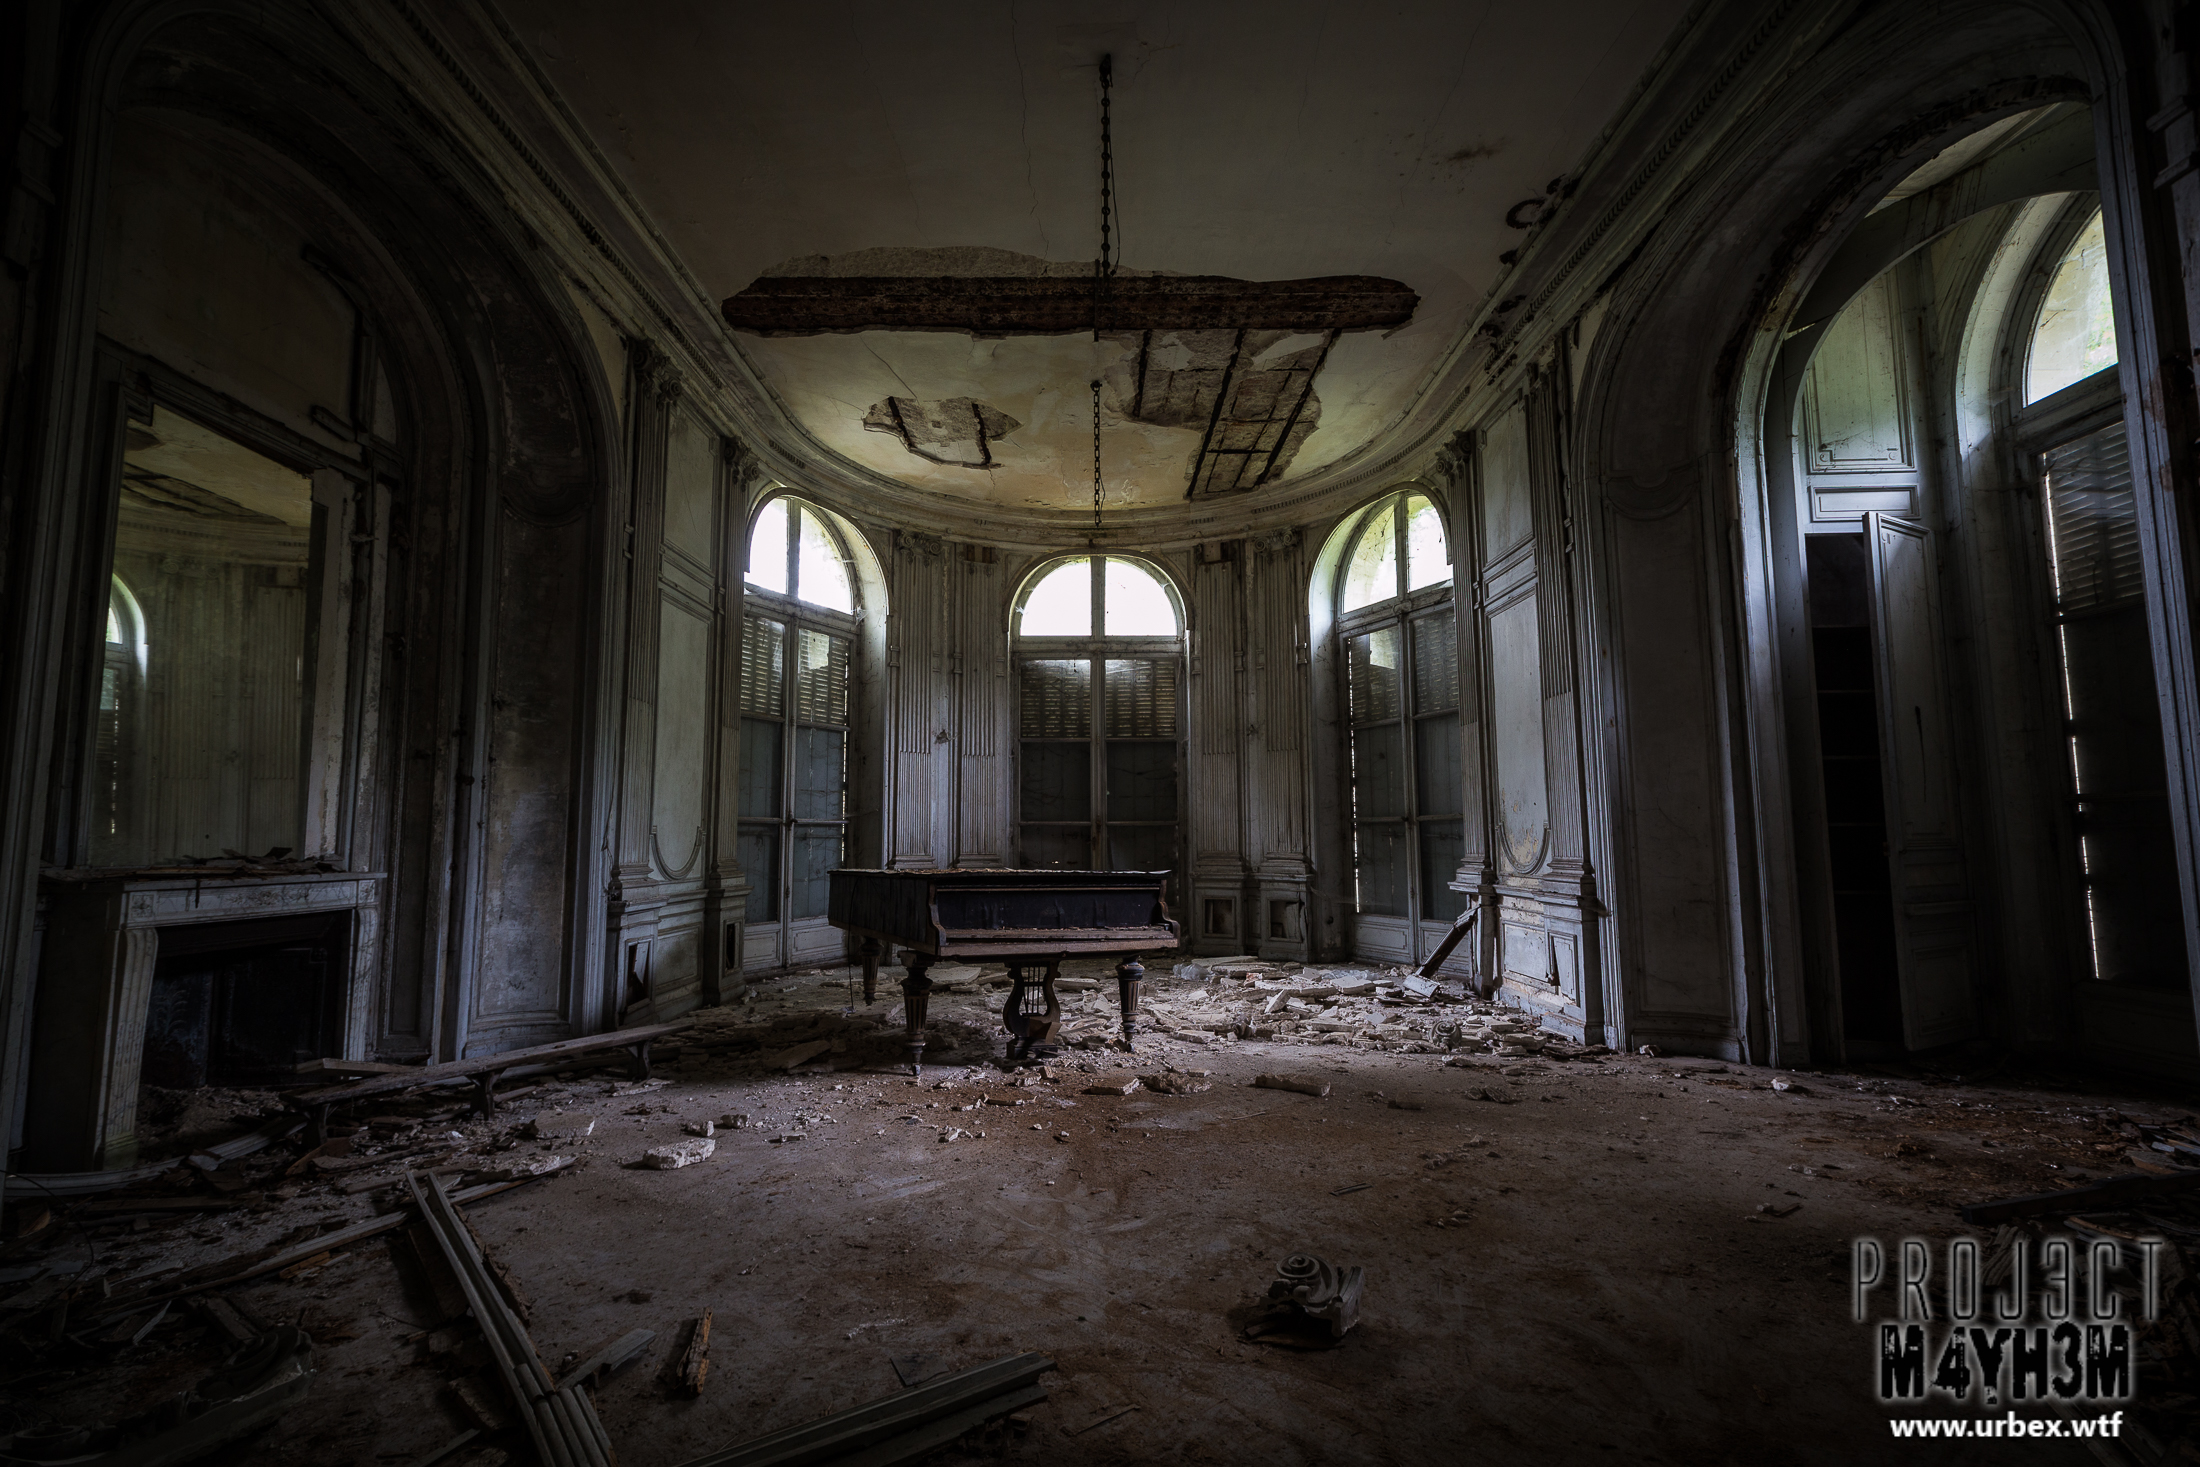 A decaying French Château